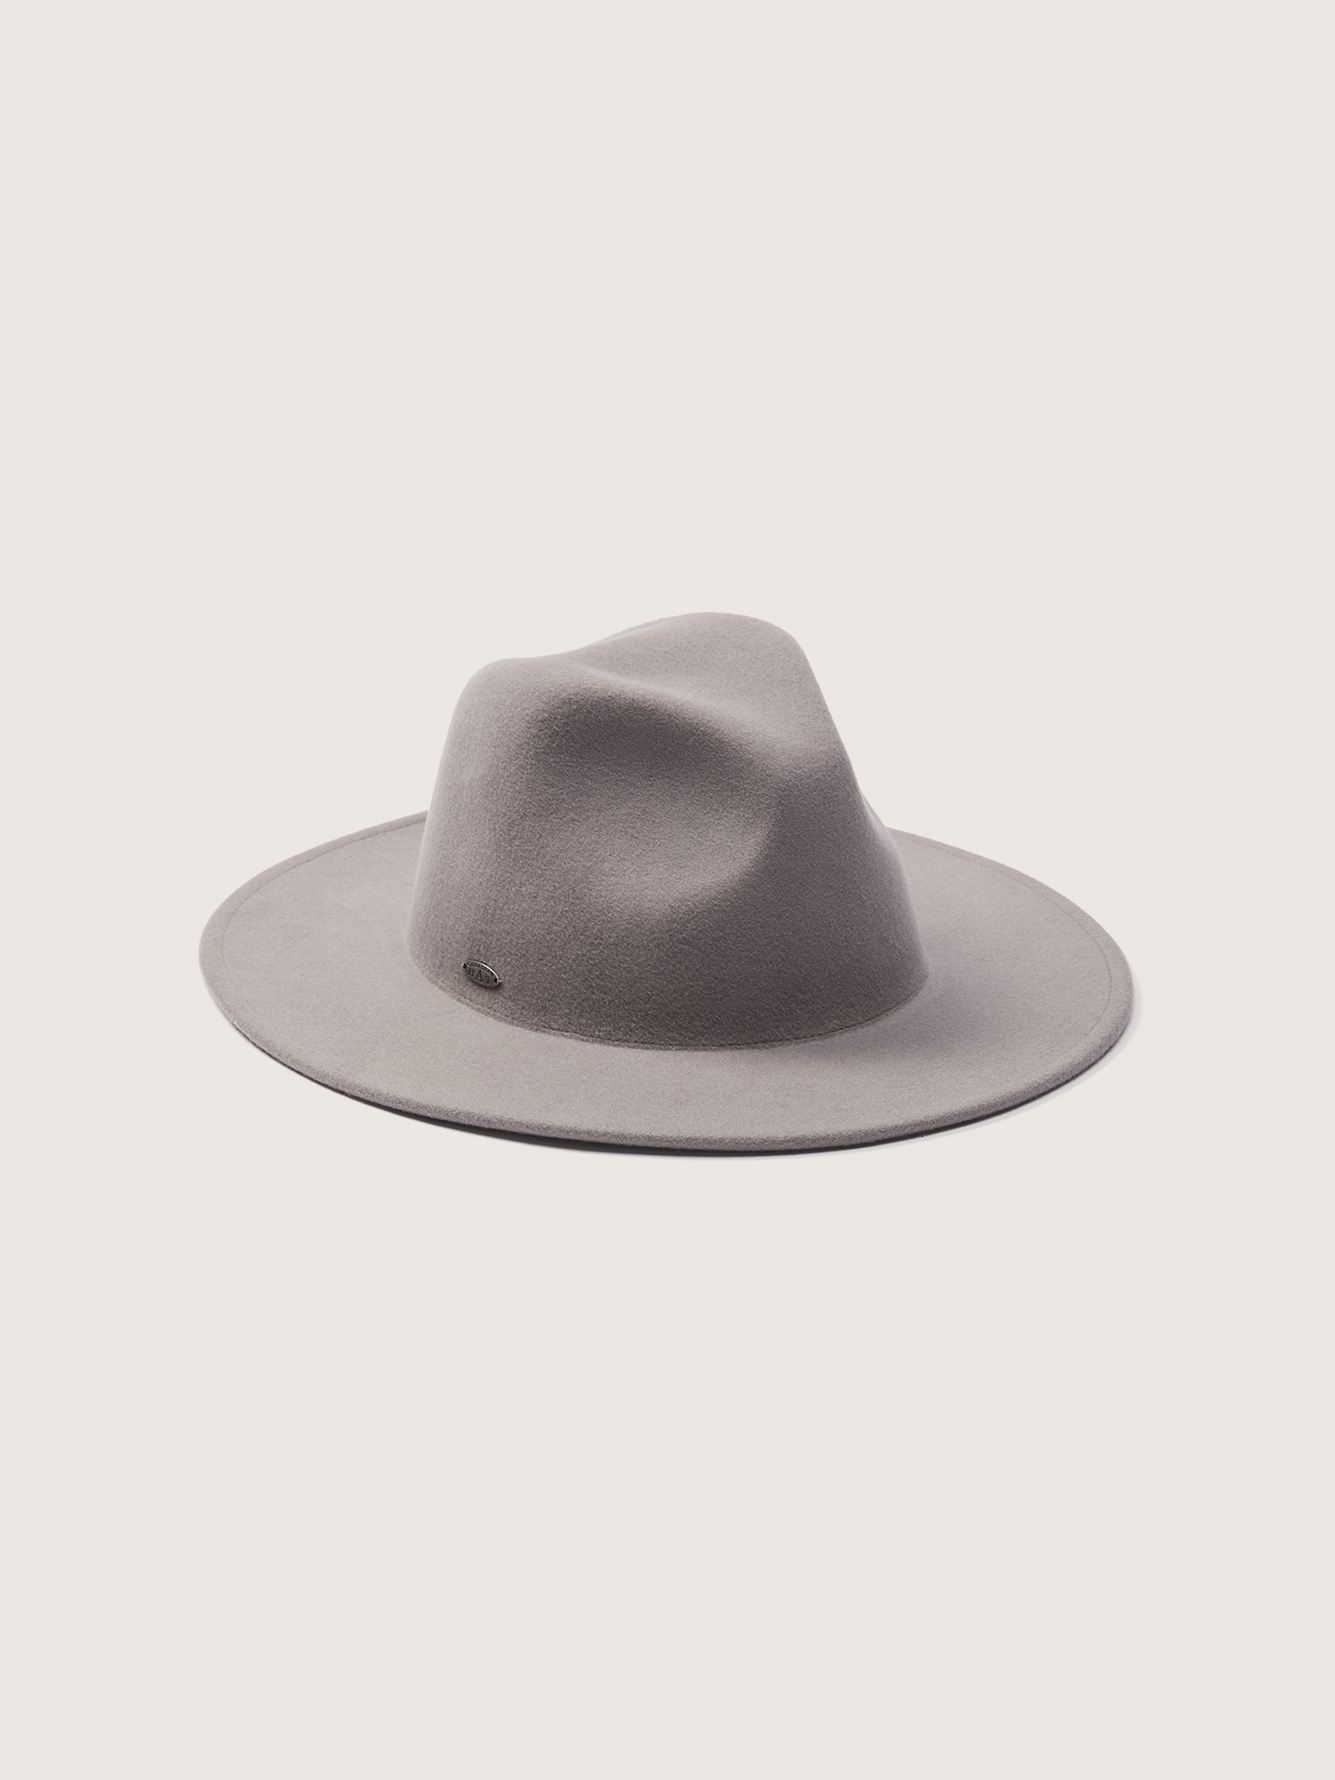 Floppy Felt Hat - Canadian Hat